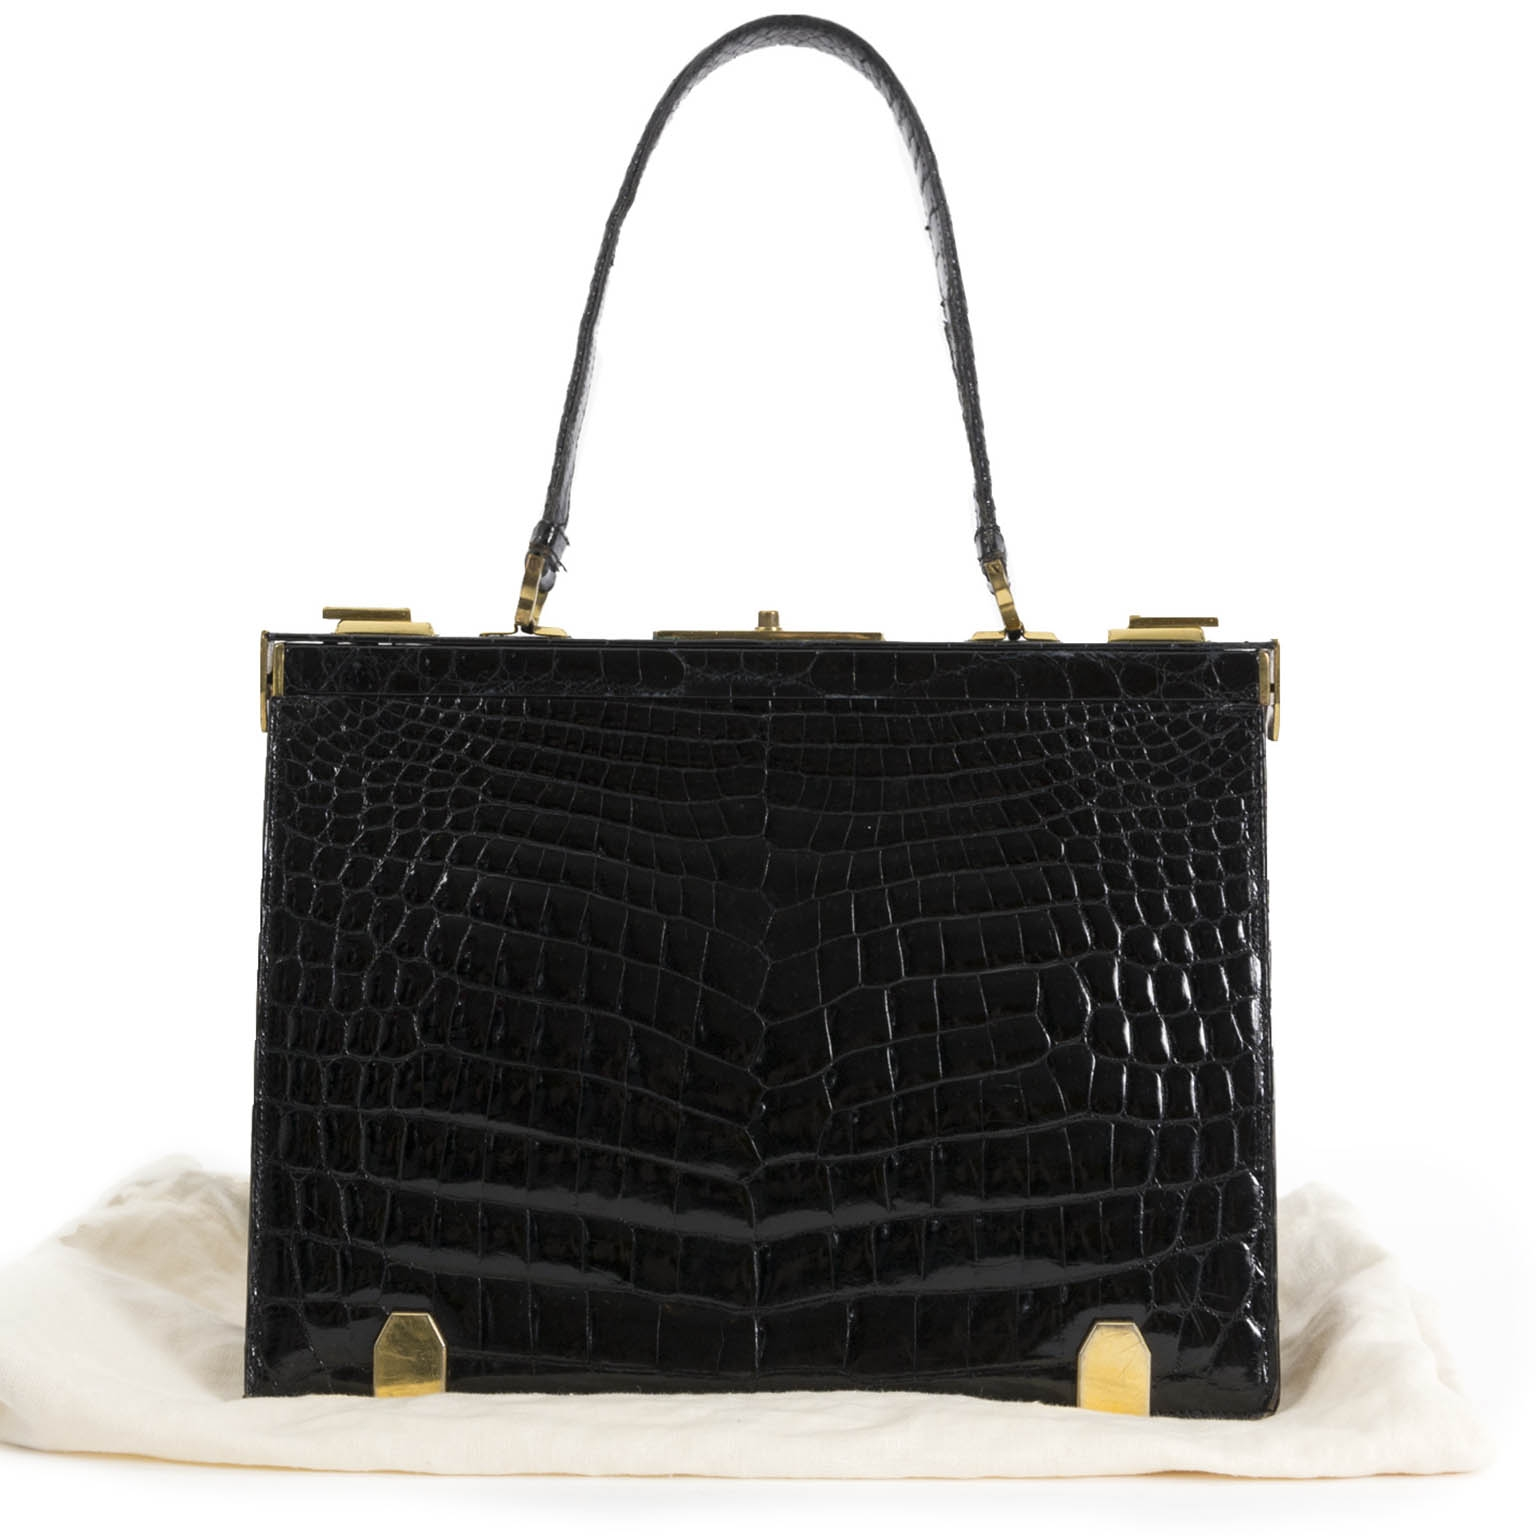 Delvaux 'Mon Grand Bonheur' Croco Top Handle Bag for sale online